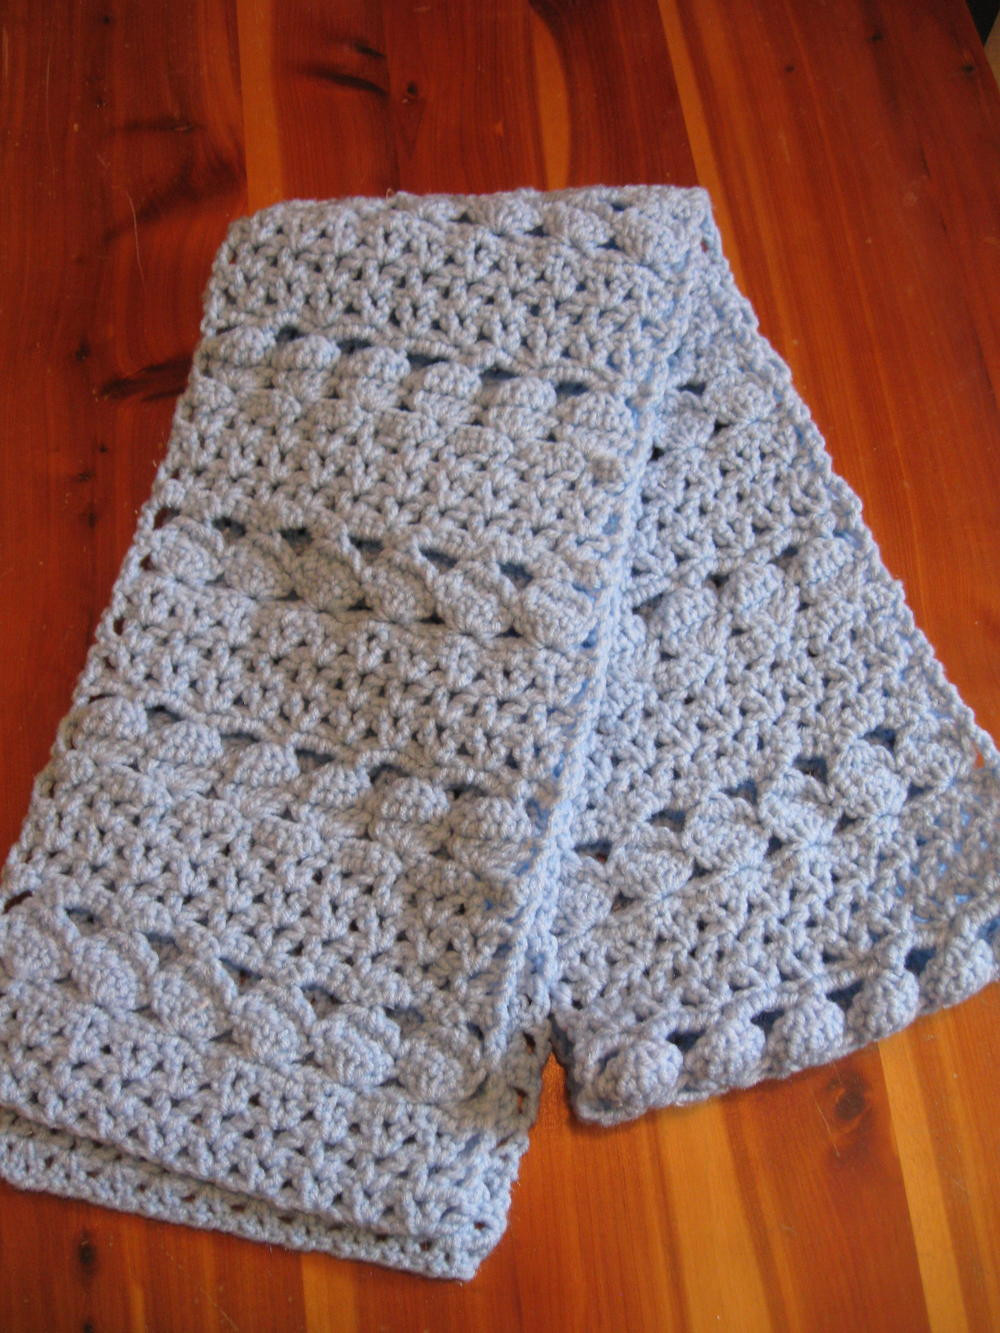 Scarf Crochet Luxury Cozy Blue Crochet Scarf Of Innovative 47 Pictures Scarf Crochet